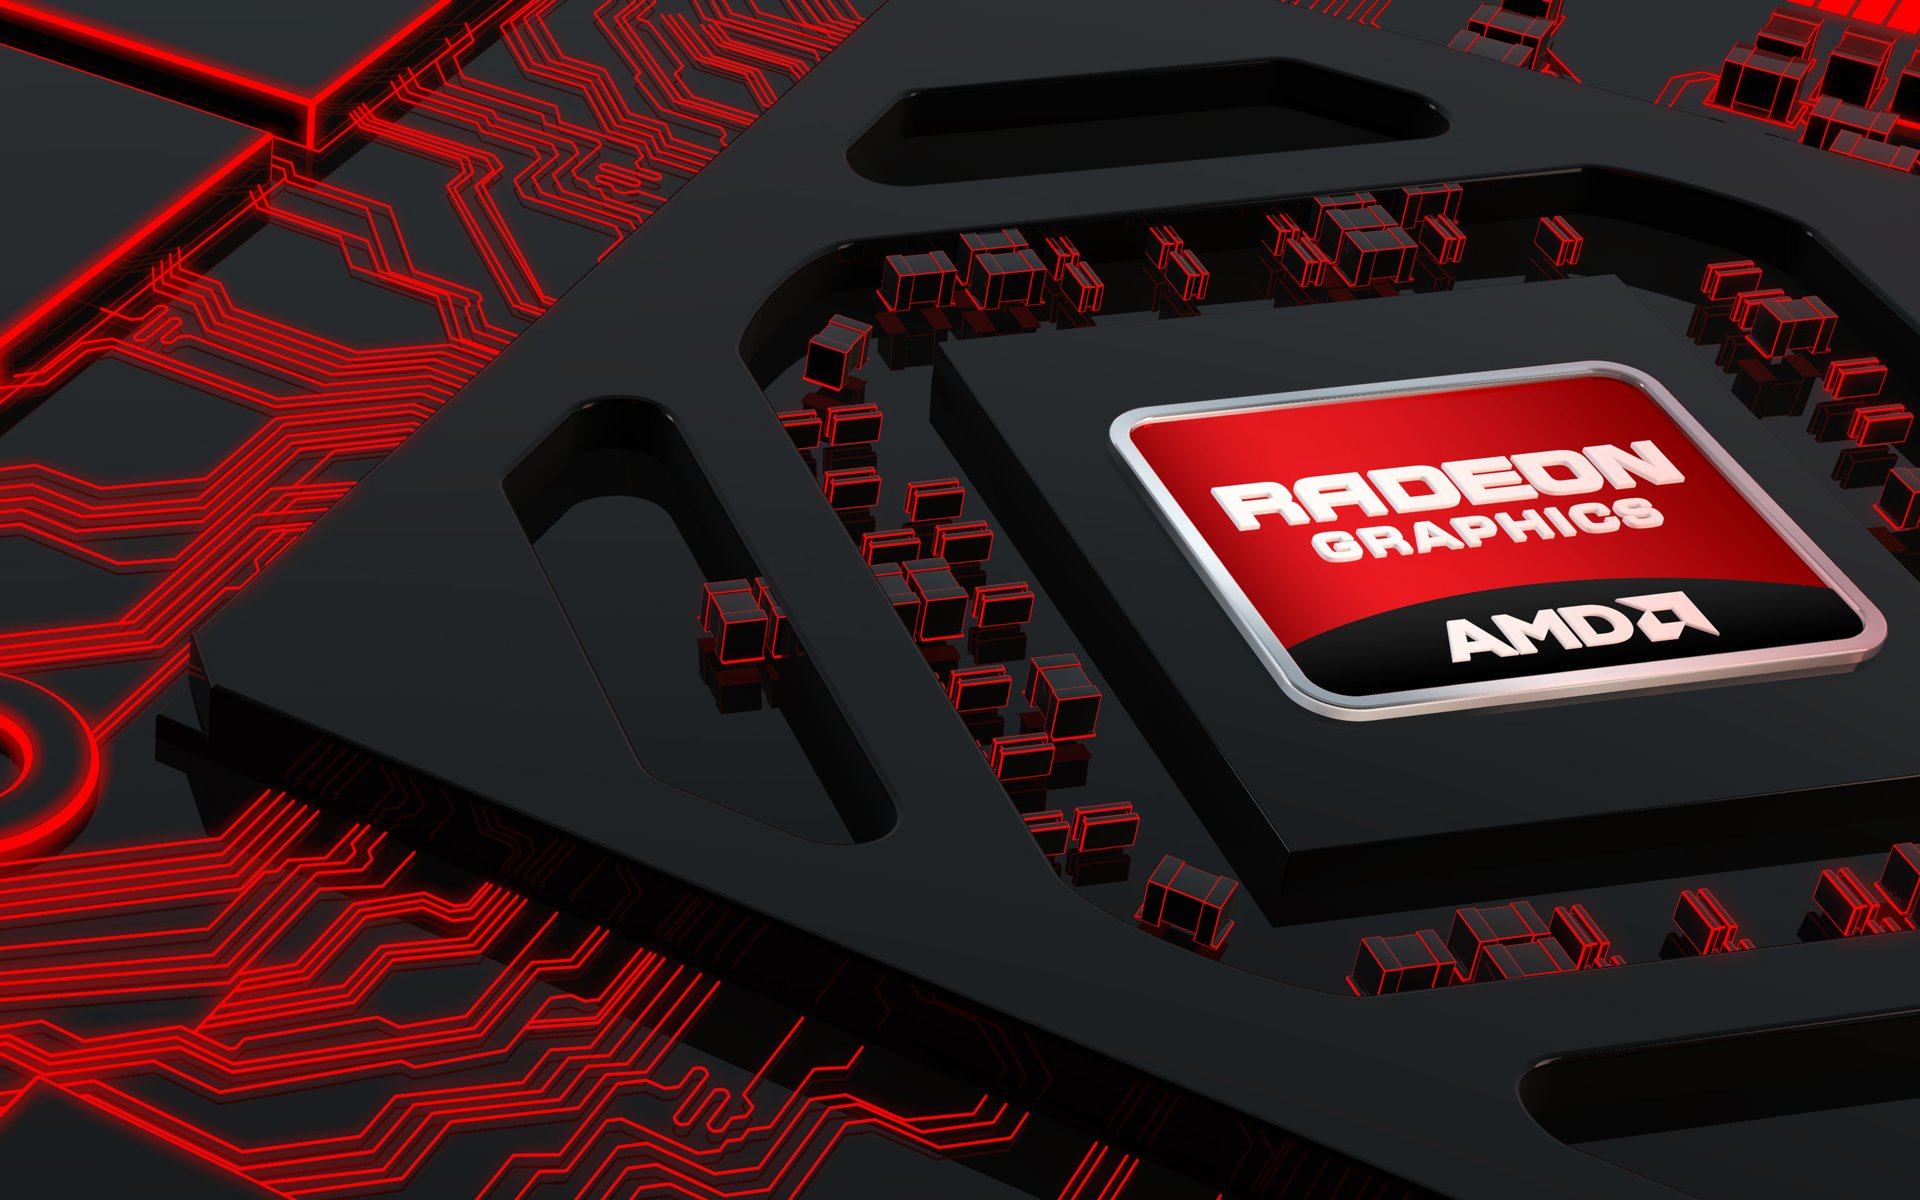 amd radeon wallpapers hd - photo #12